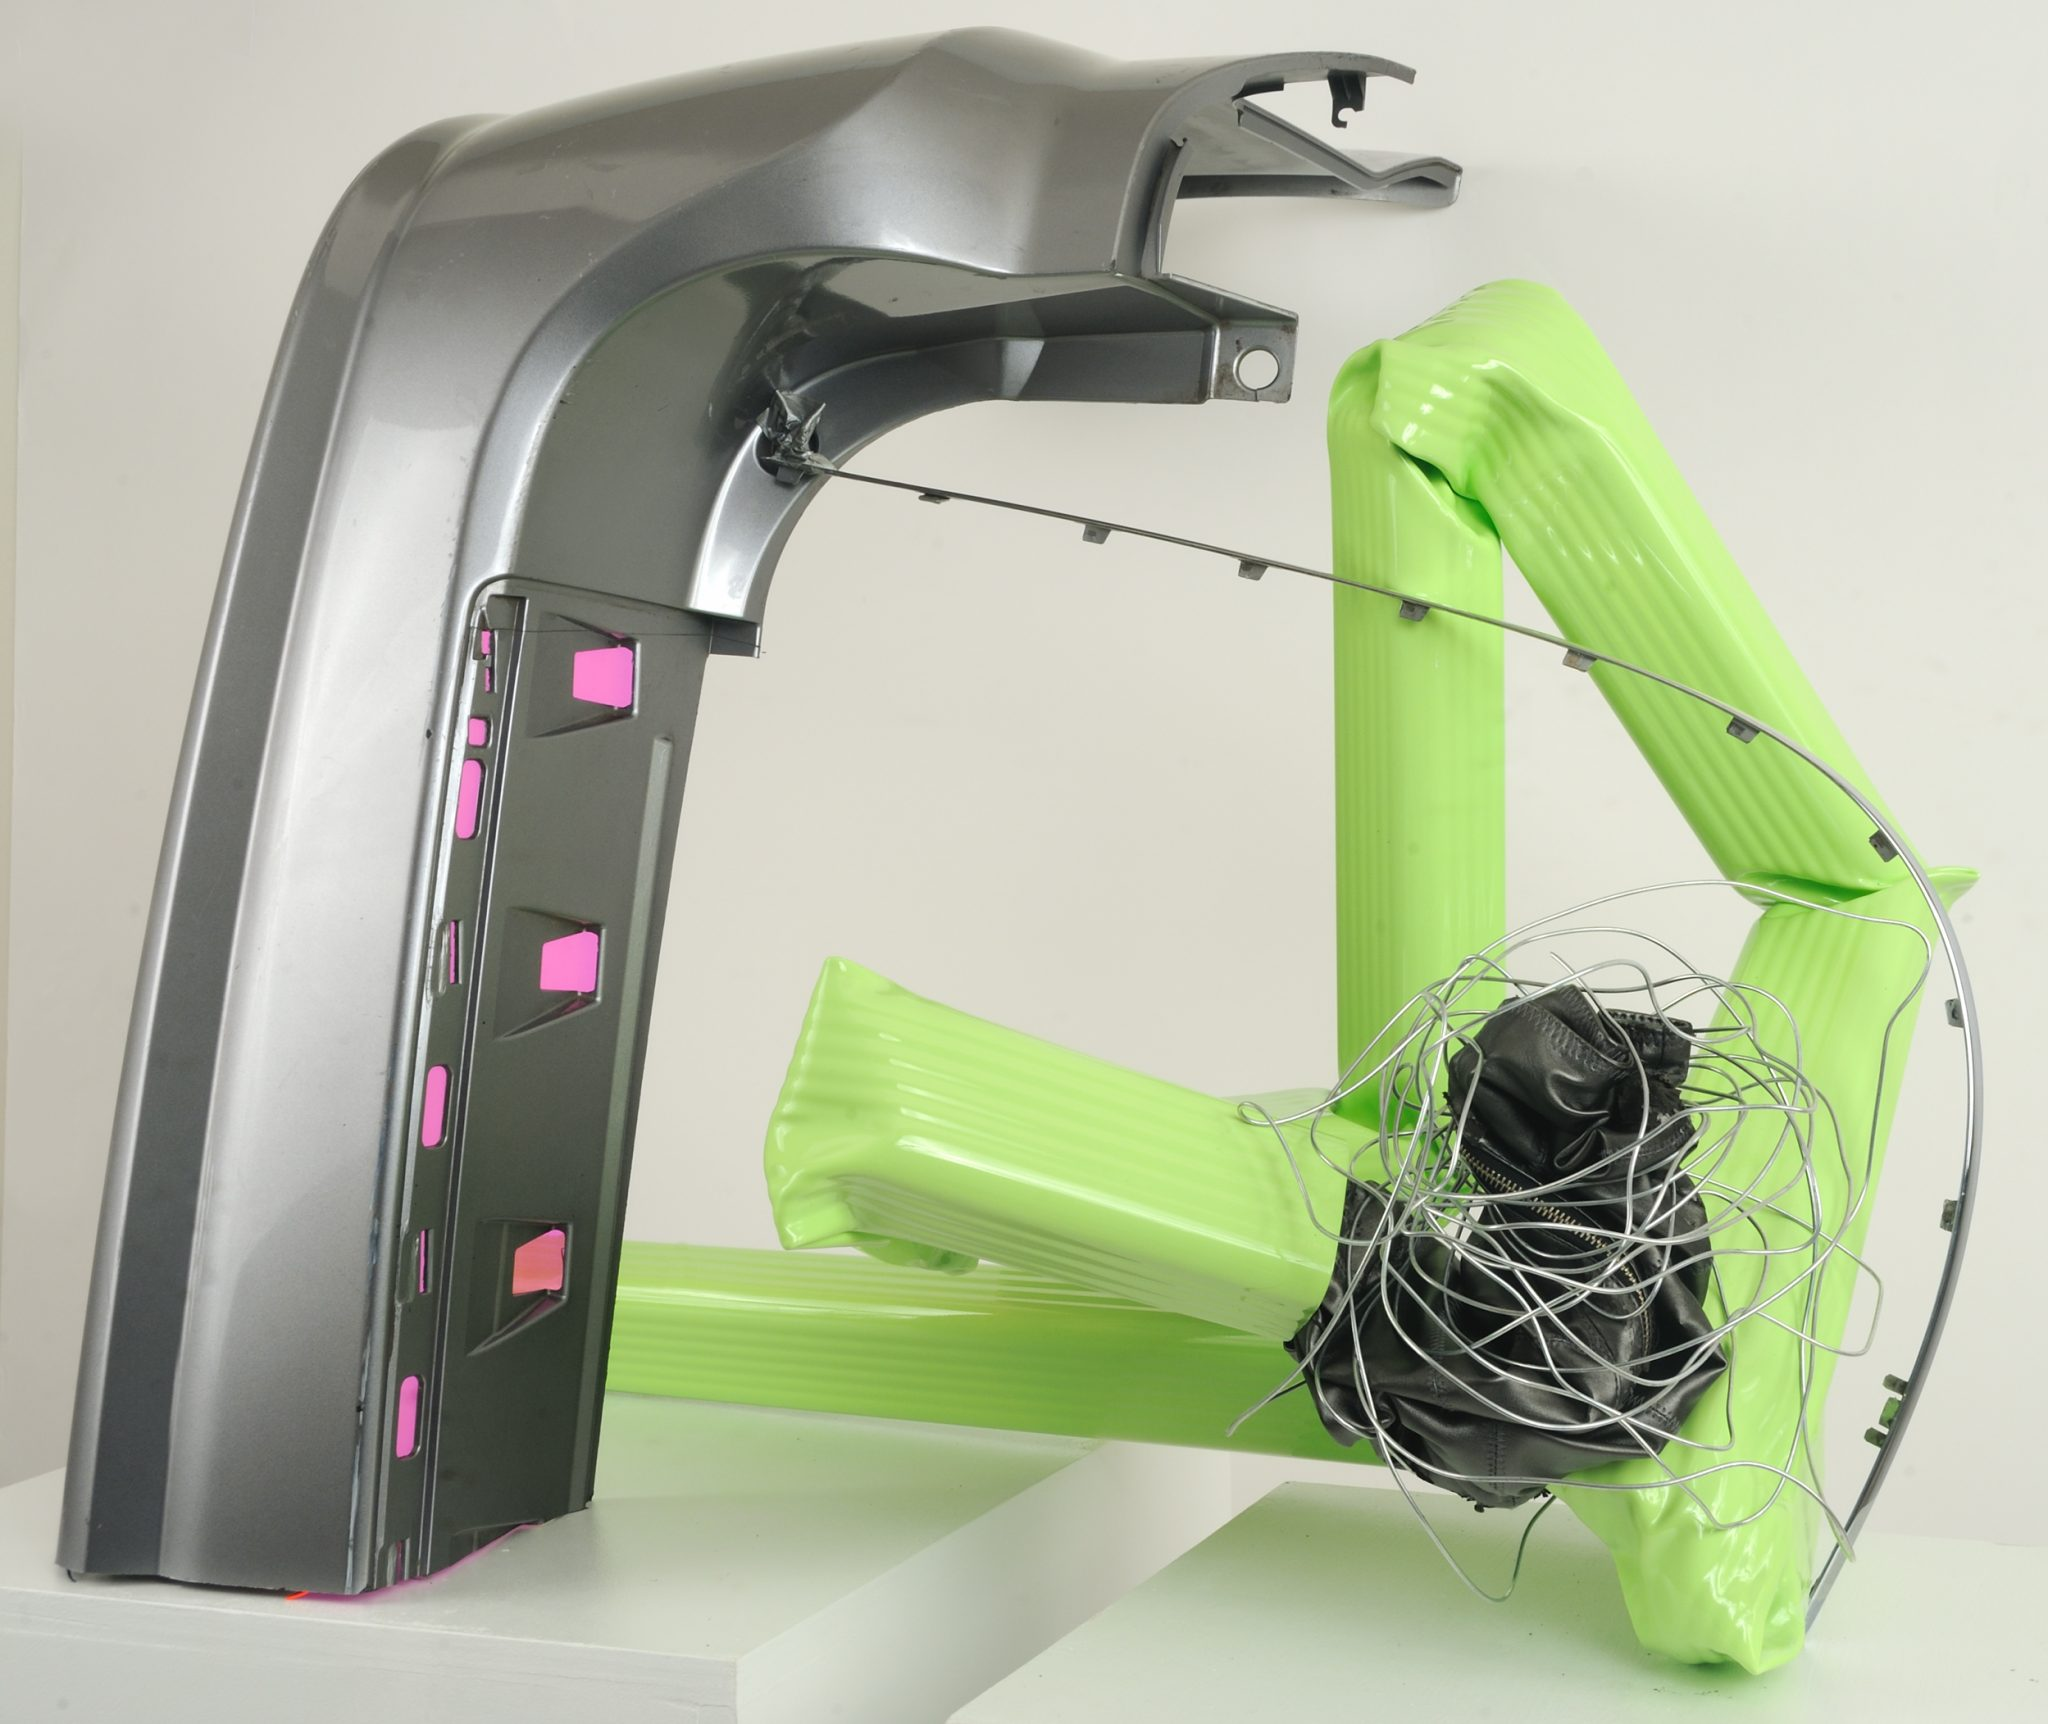 "Green 3   Leather, Zipper, Steel, Duct tape, Downspout, Auto Part, Vinyl, Wire  41.5"" x 33"" x 32""  $3,800  Click to enlarge   Inquire."